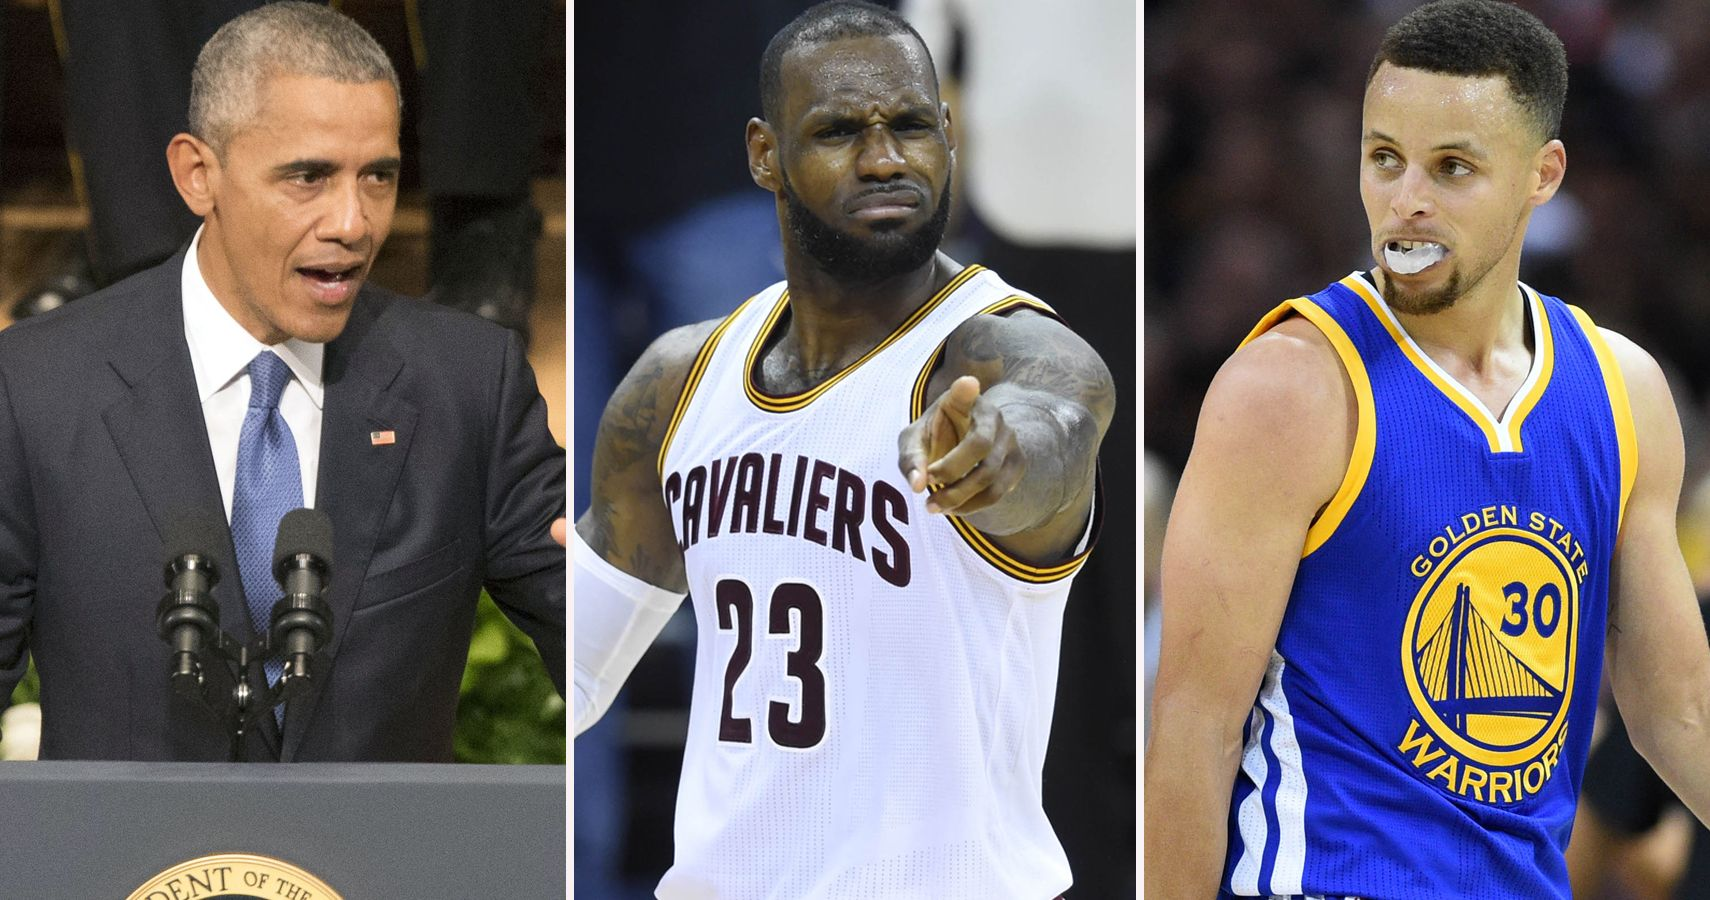 8 People Who Hate LeBron James And 8 Who Love Him